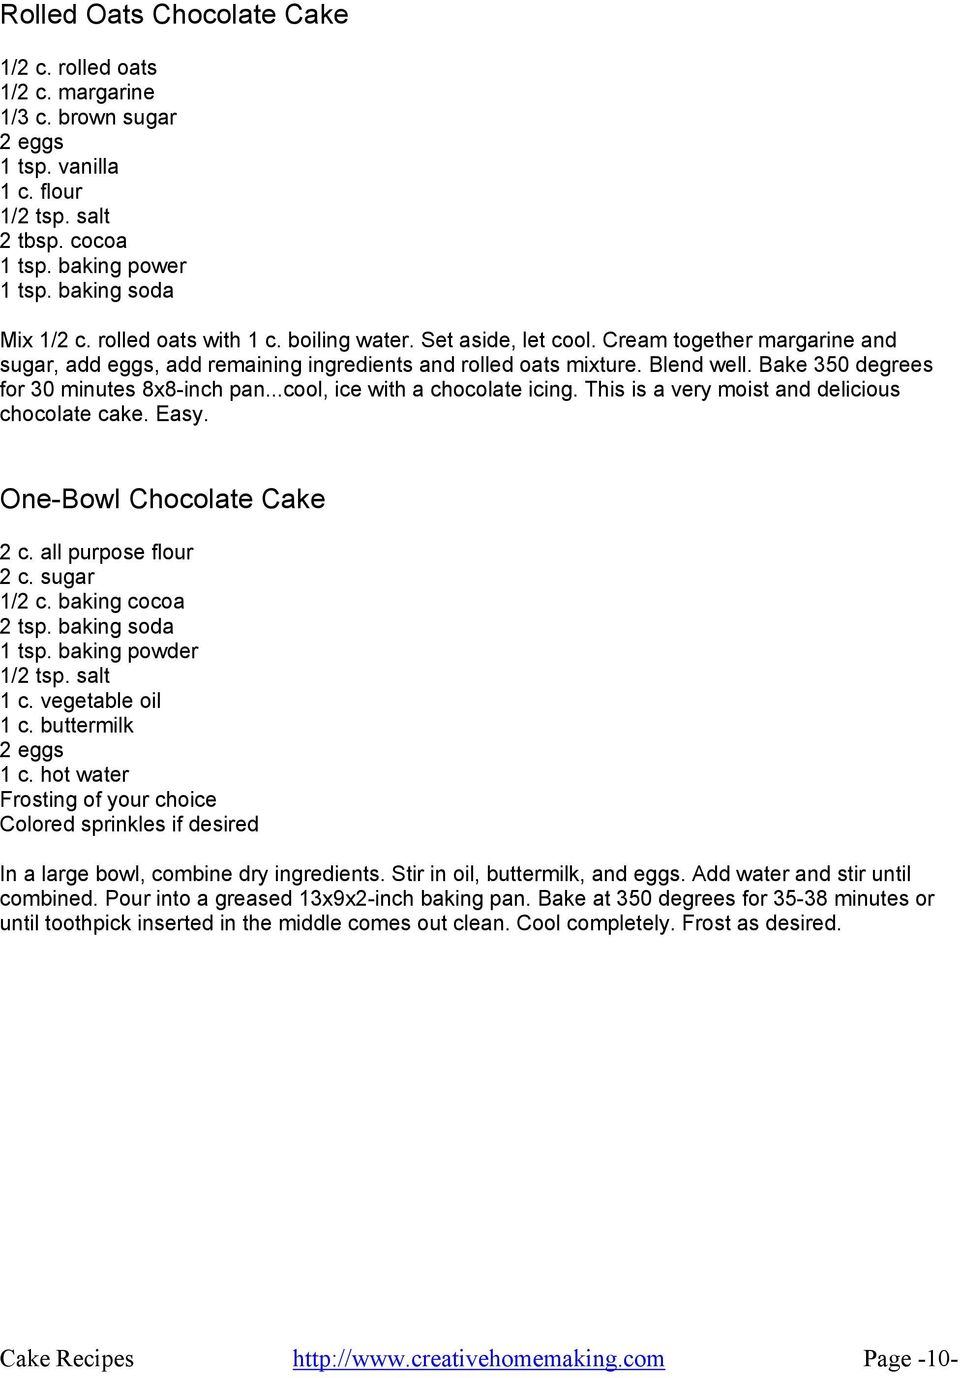 ..cool, ice with a chocolate icing. This is a very moist and delicious chocolate cake. Easy. One-Bowl Chocolate Cake 2 c. all purpose flour 1/2 c. baking cocoa 2 tsp. baking soda 1 tsp.